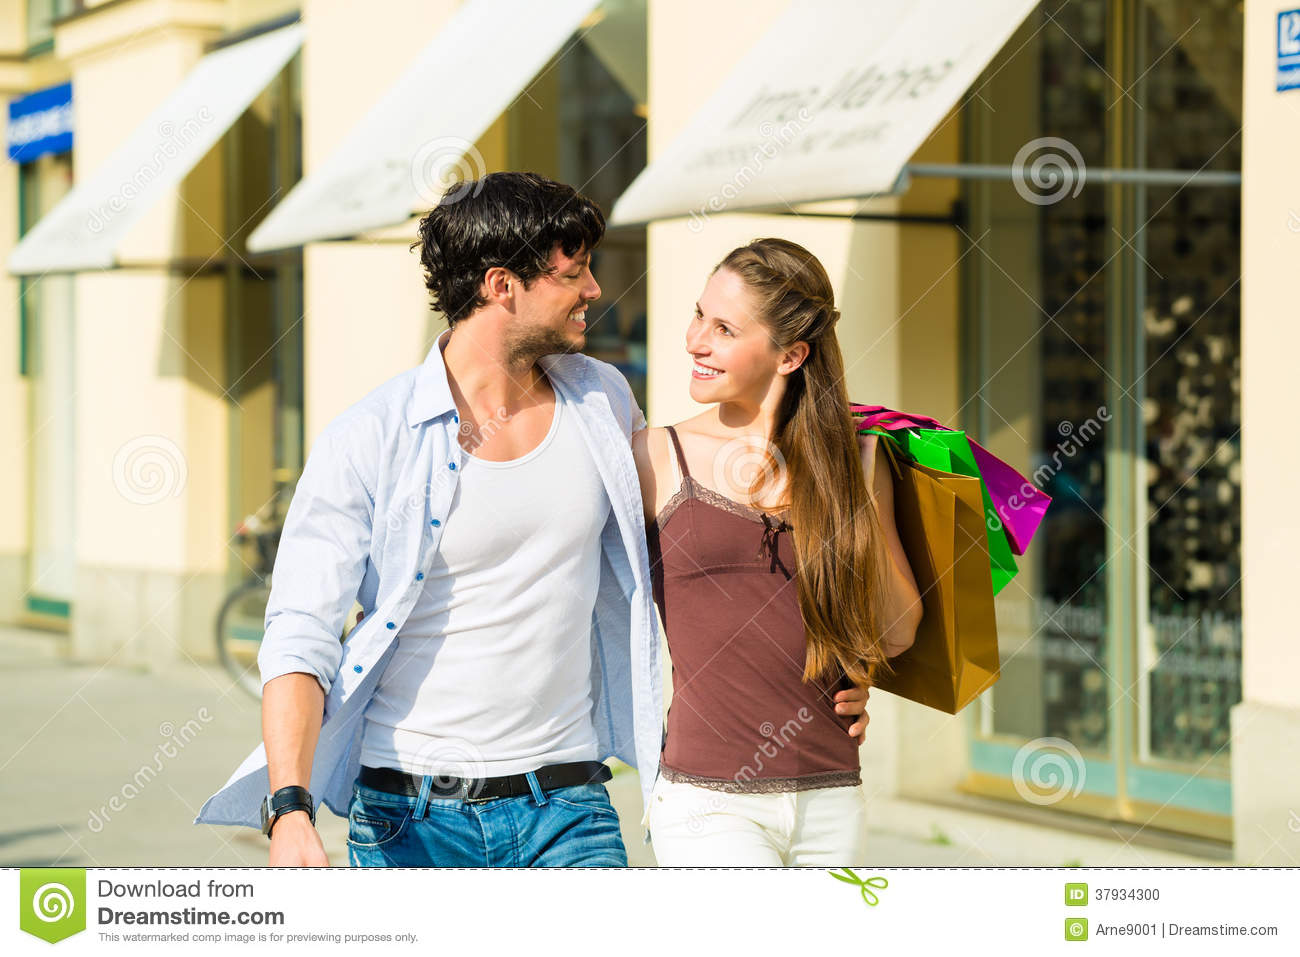 Couple shopping and spending money in city stock photo image 37934300 - Shopping cash card paying spending ...